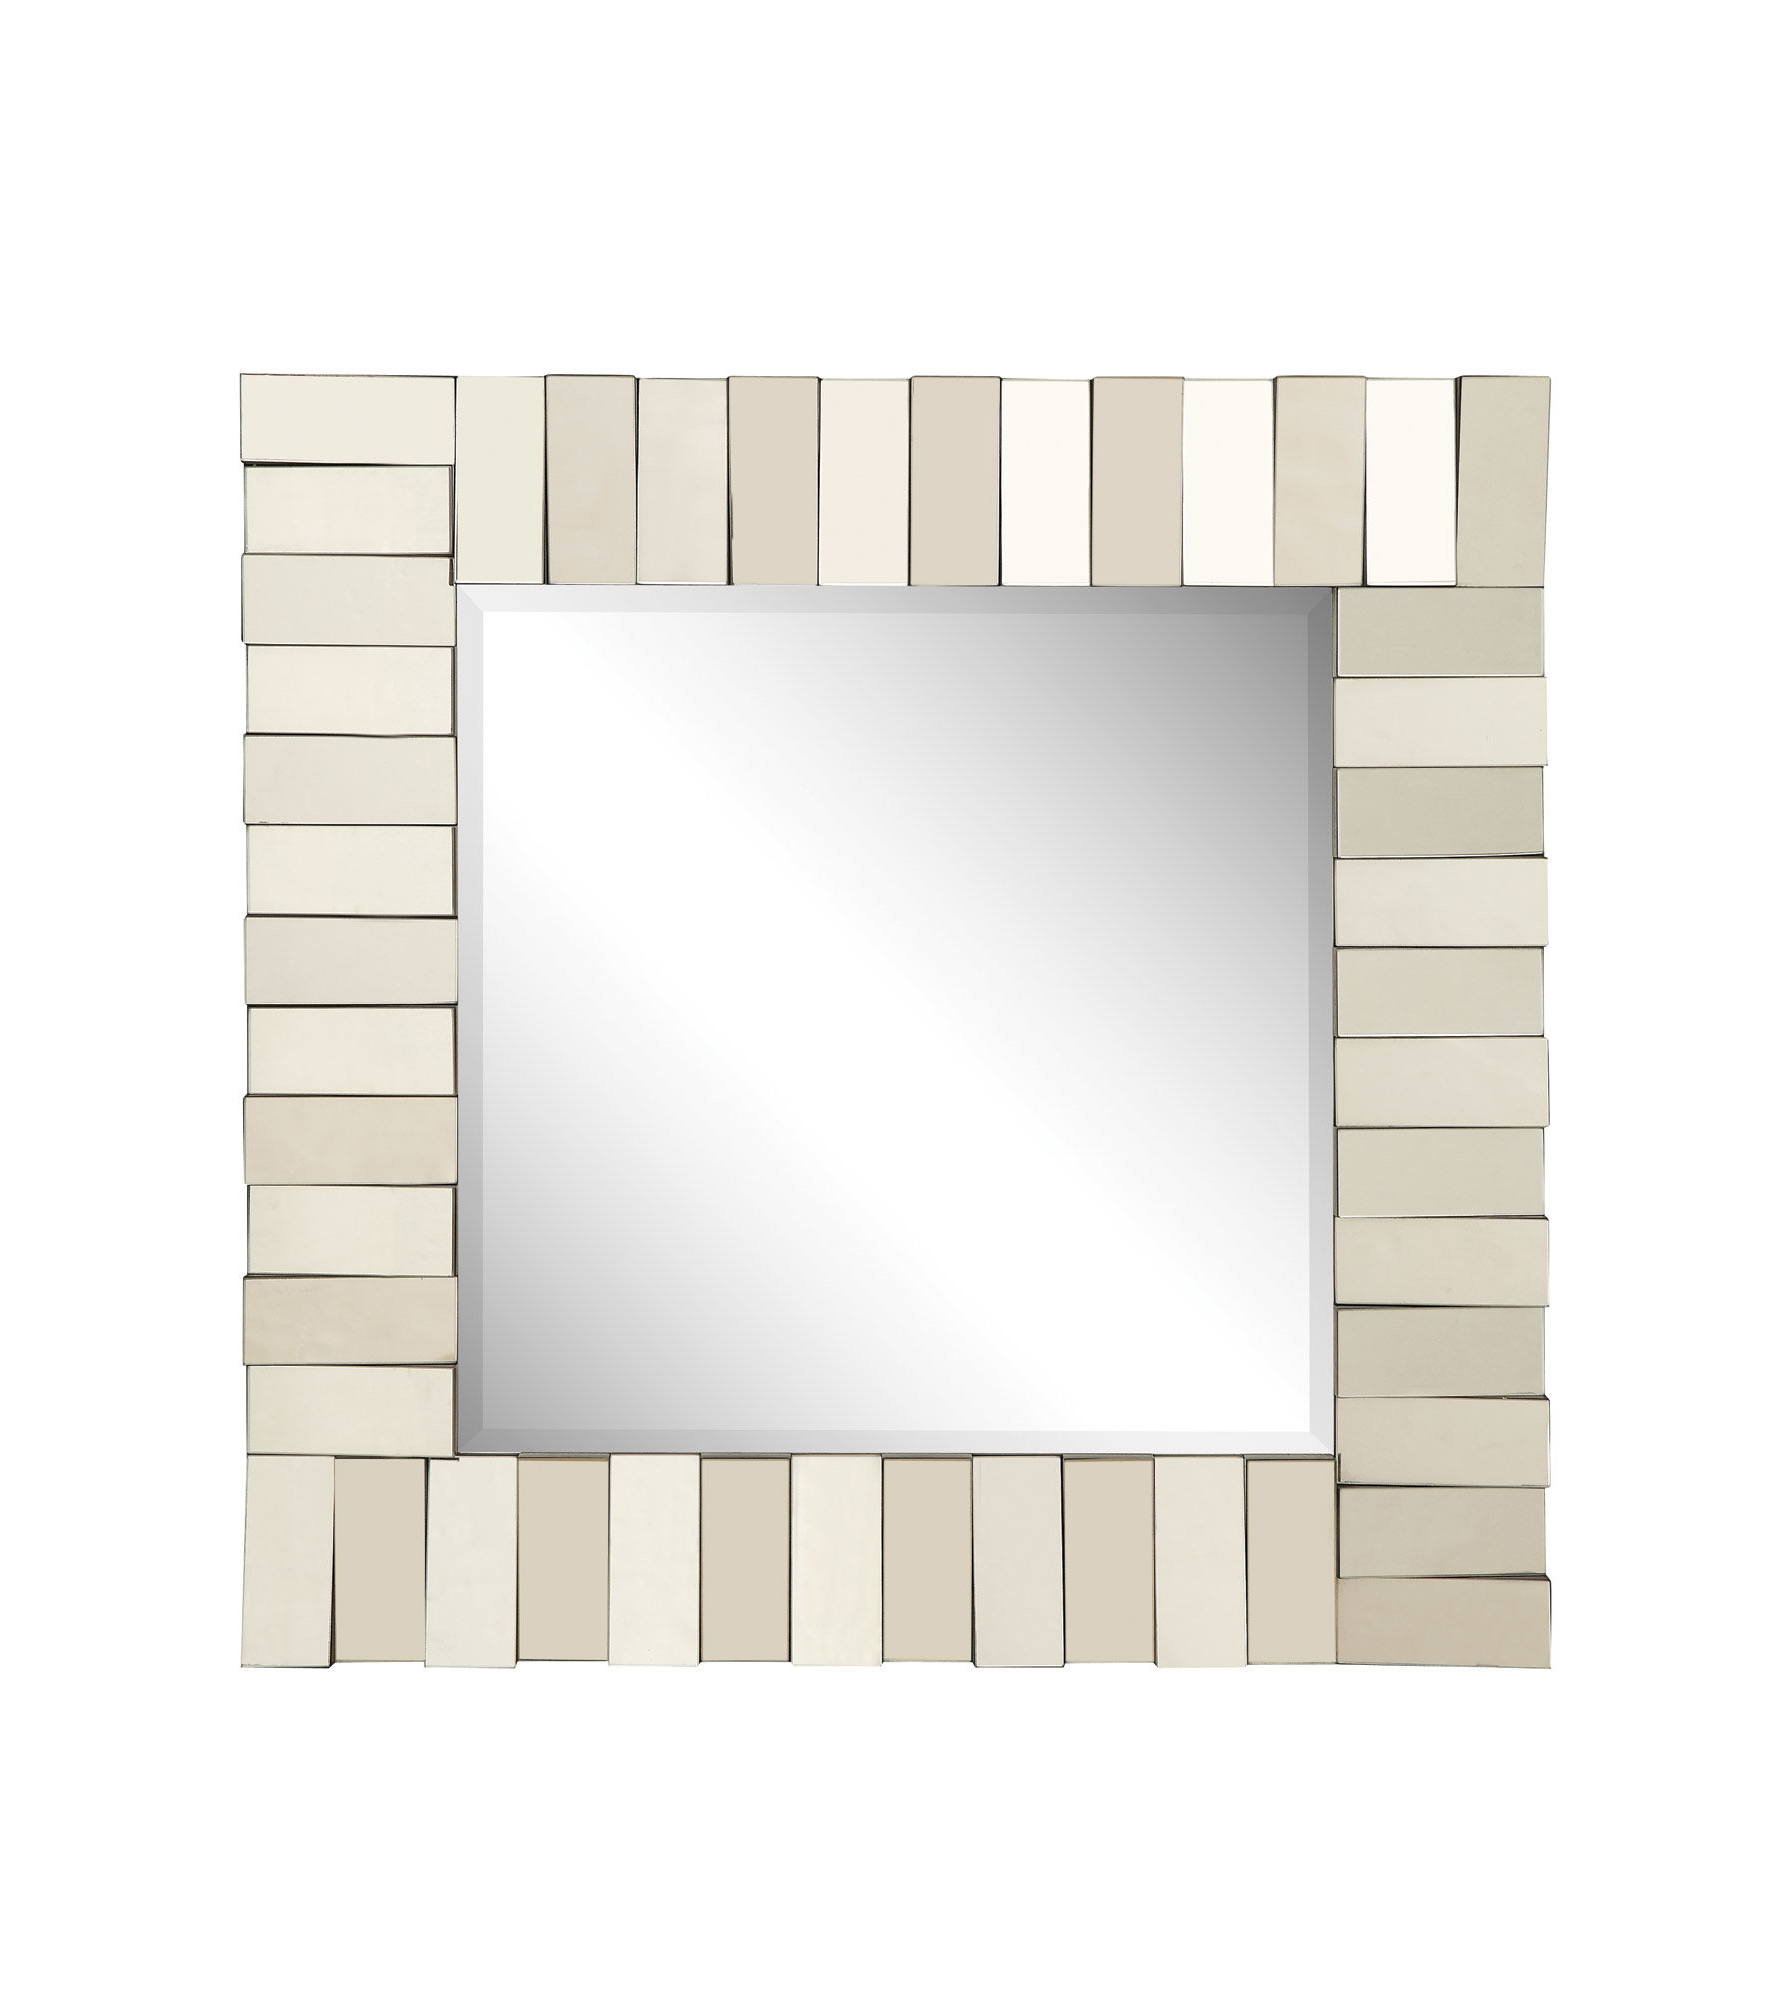 Most Recently Released Modern & Contemporary Beveled Wall Mirror Intended For Modern & Contemporary Beveled Wall Mirrors (Gallery 3 of 20)